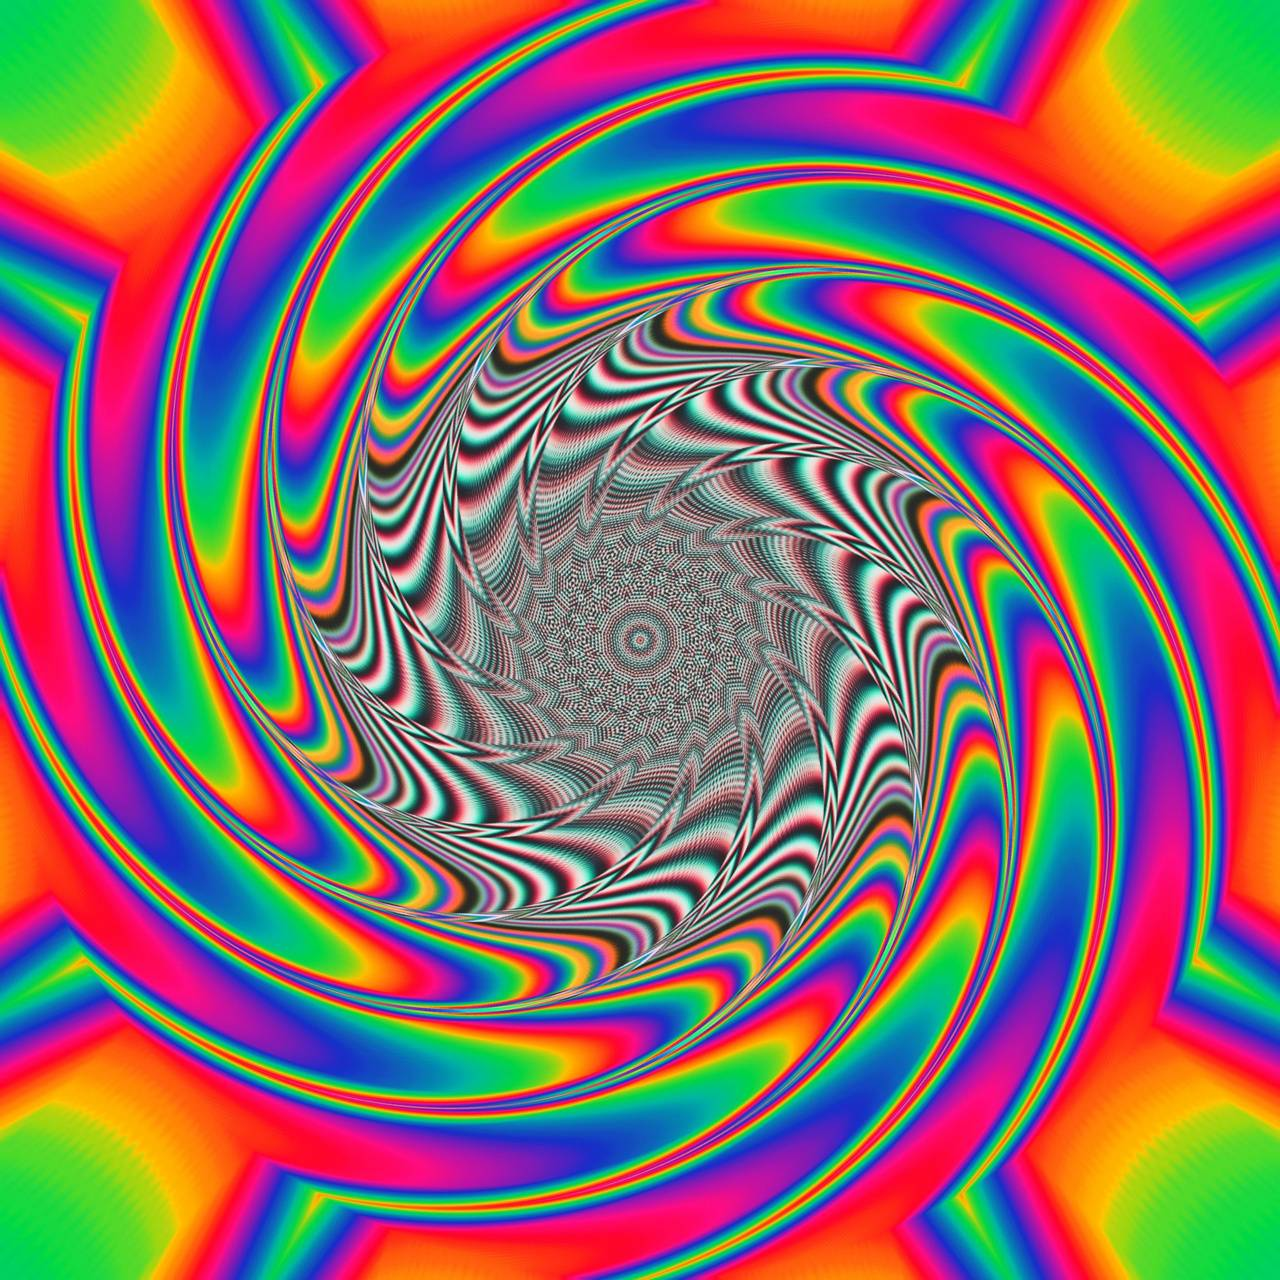 another trippy art